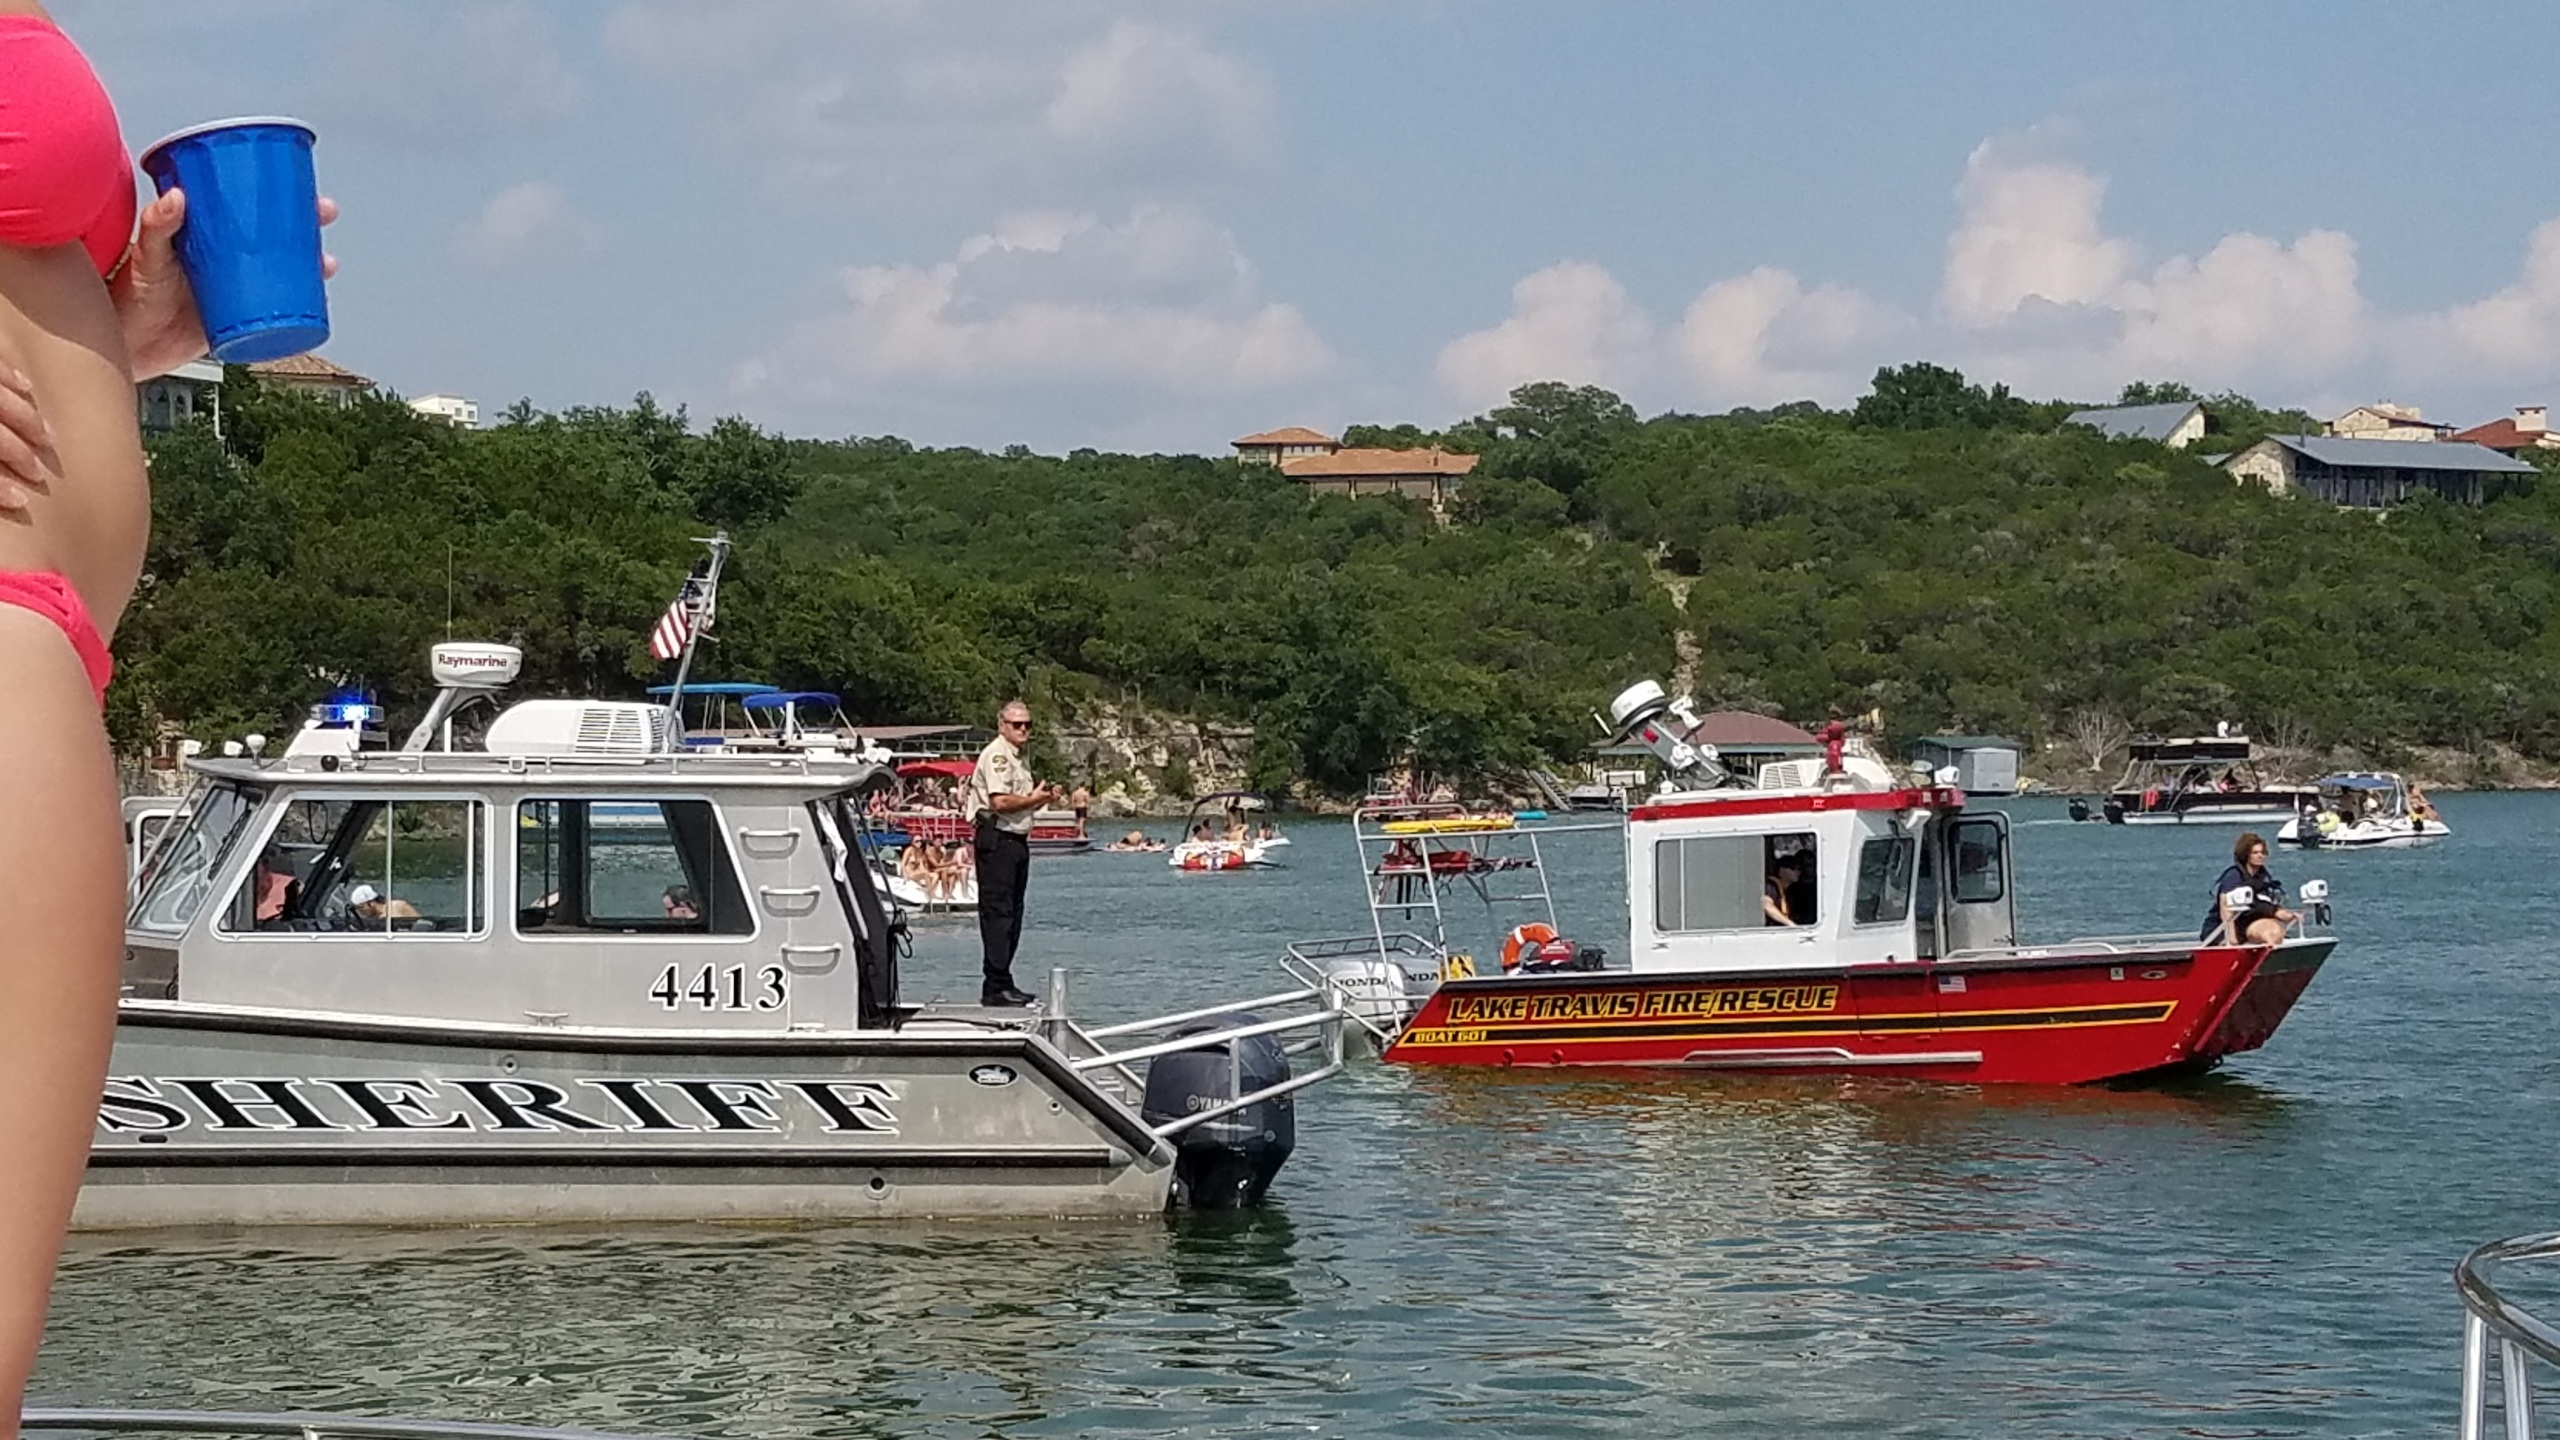 Rescue boats combed Lake Travis looking for a swimmer that went missing on Saturday, June 11._298162